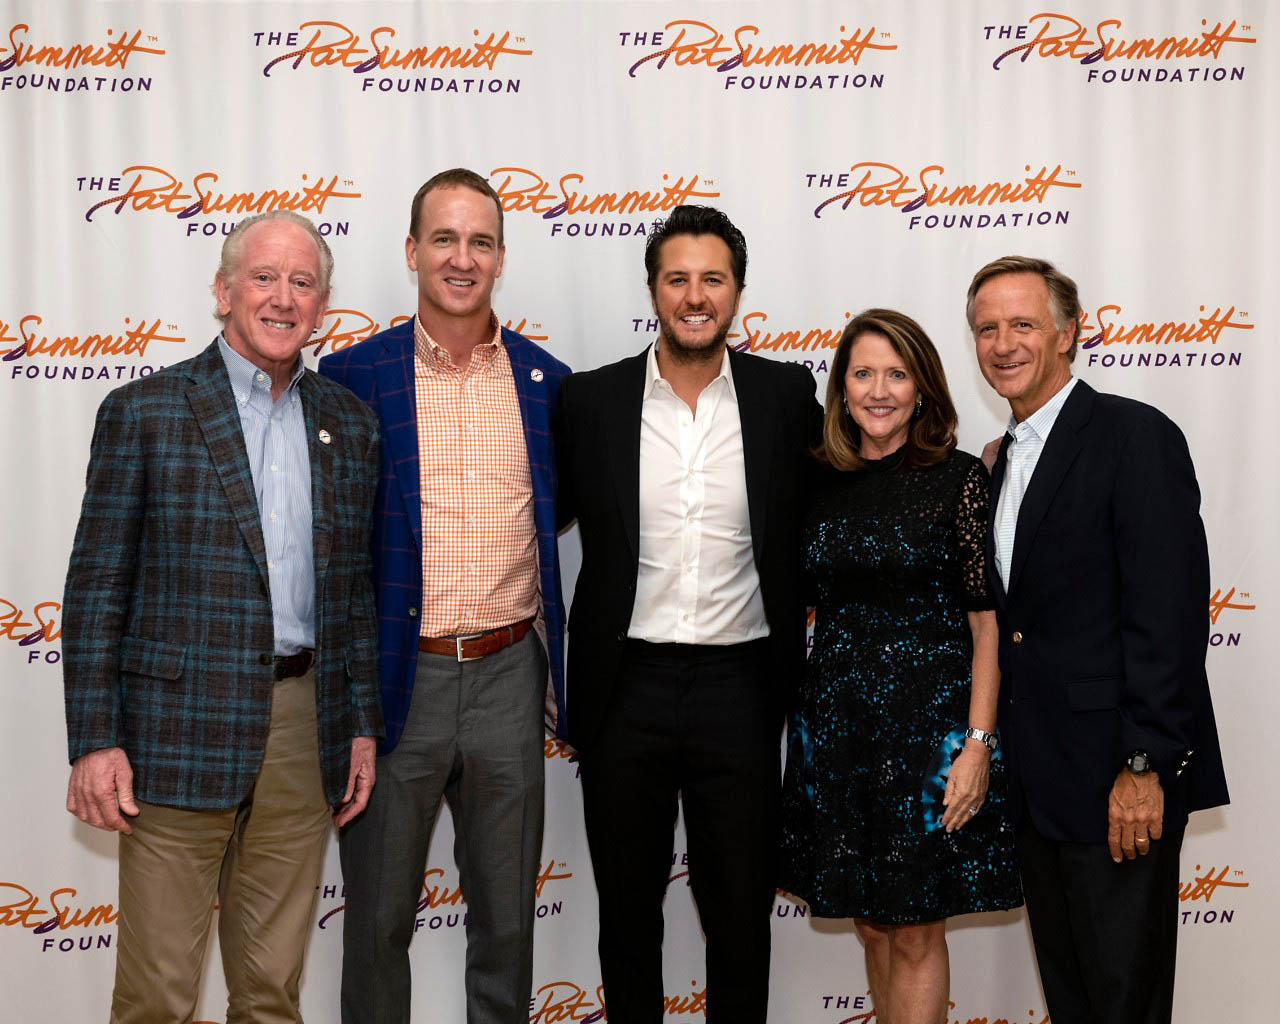 Private event at the Tennessee Residence raises funds to support fight against Alzheimer's disease. (L to R) Archie Manning, Peyton Manning, Luke Bryan, Tennessee Governor Bill Haslam and First Lady Crissy Haslam.